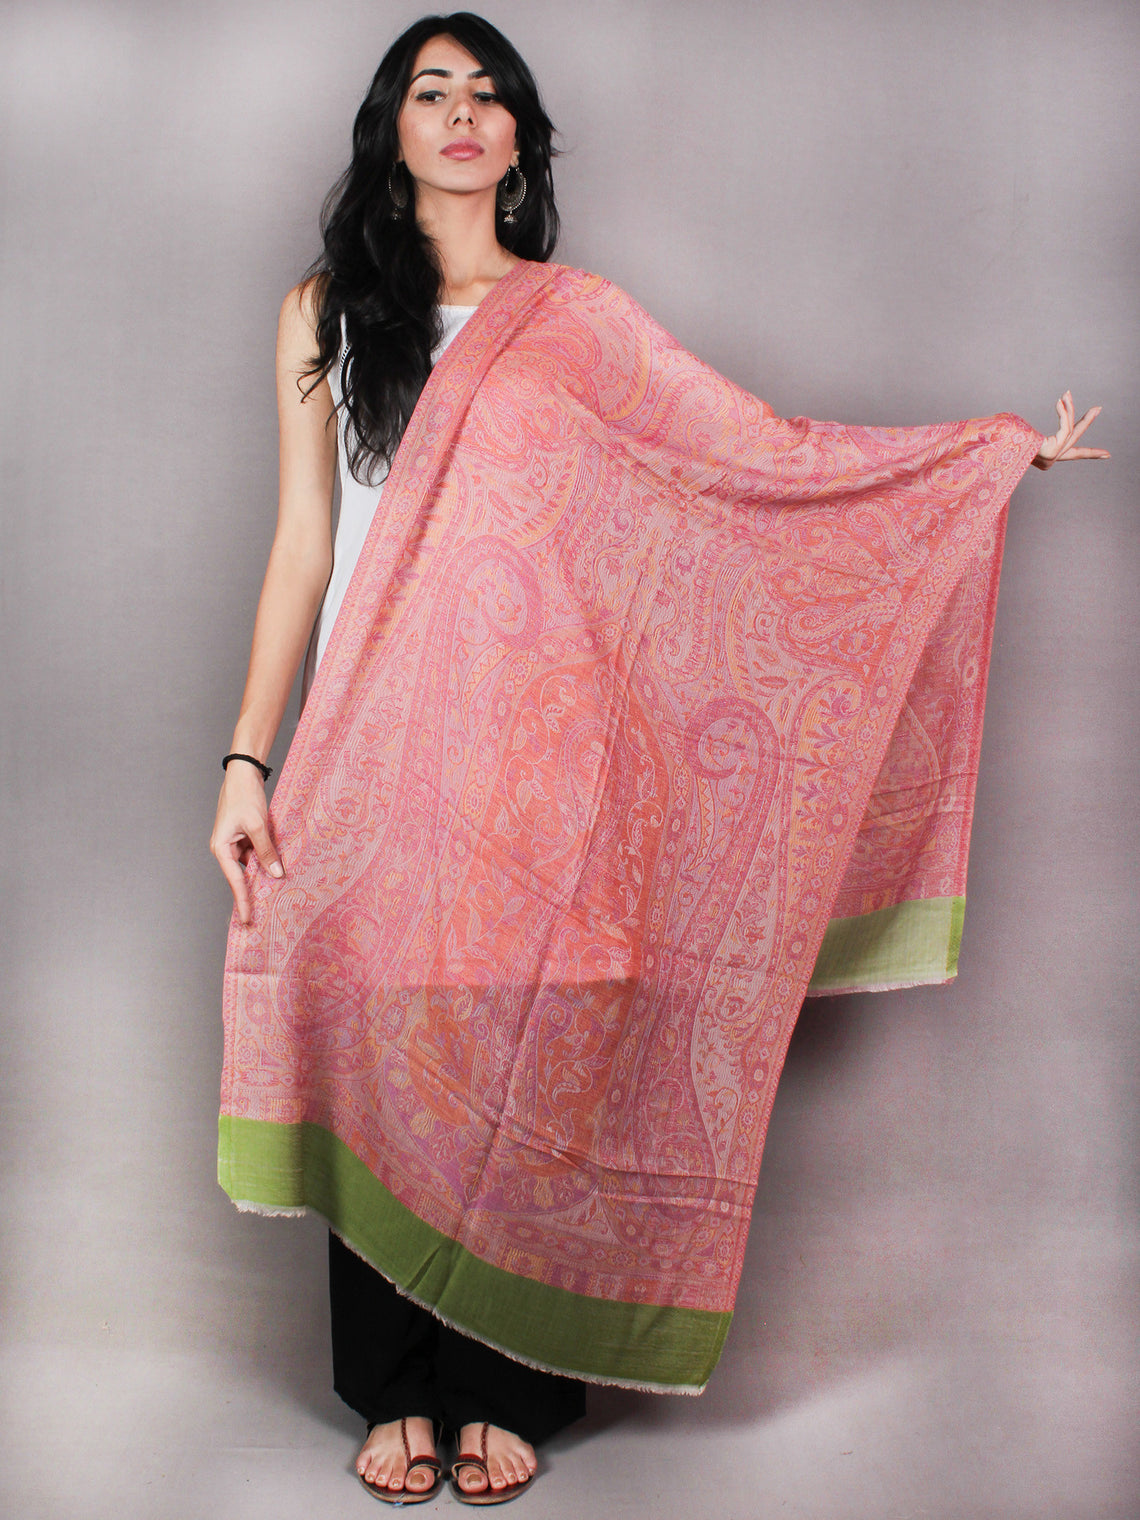 Green Multi Colour Pure Wool Jamawar Cashmere Stole from Kashmir - S6317116